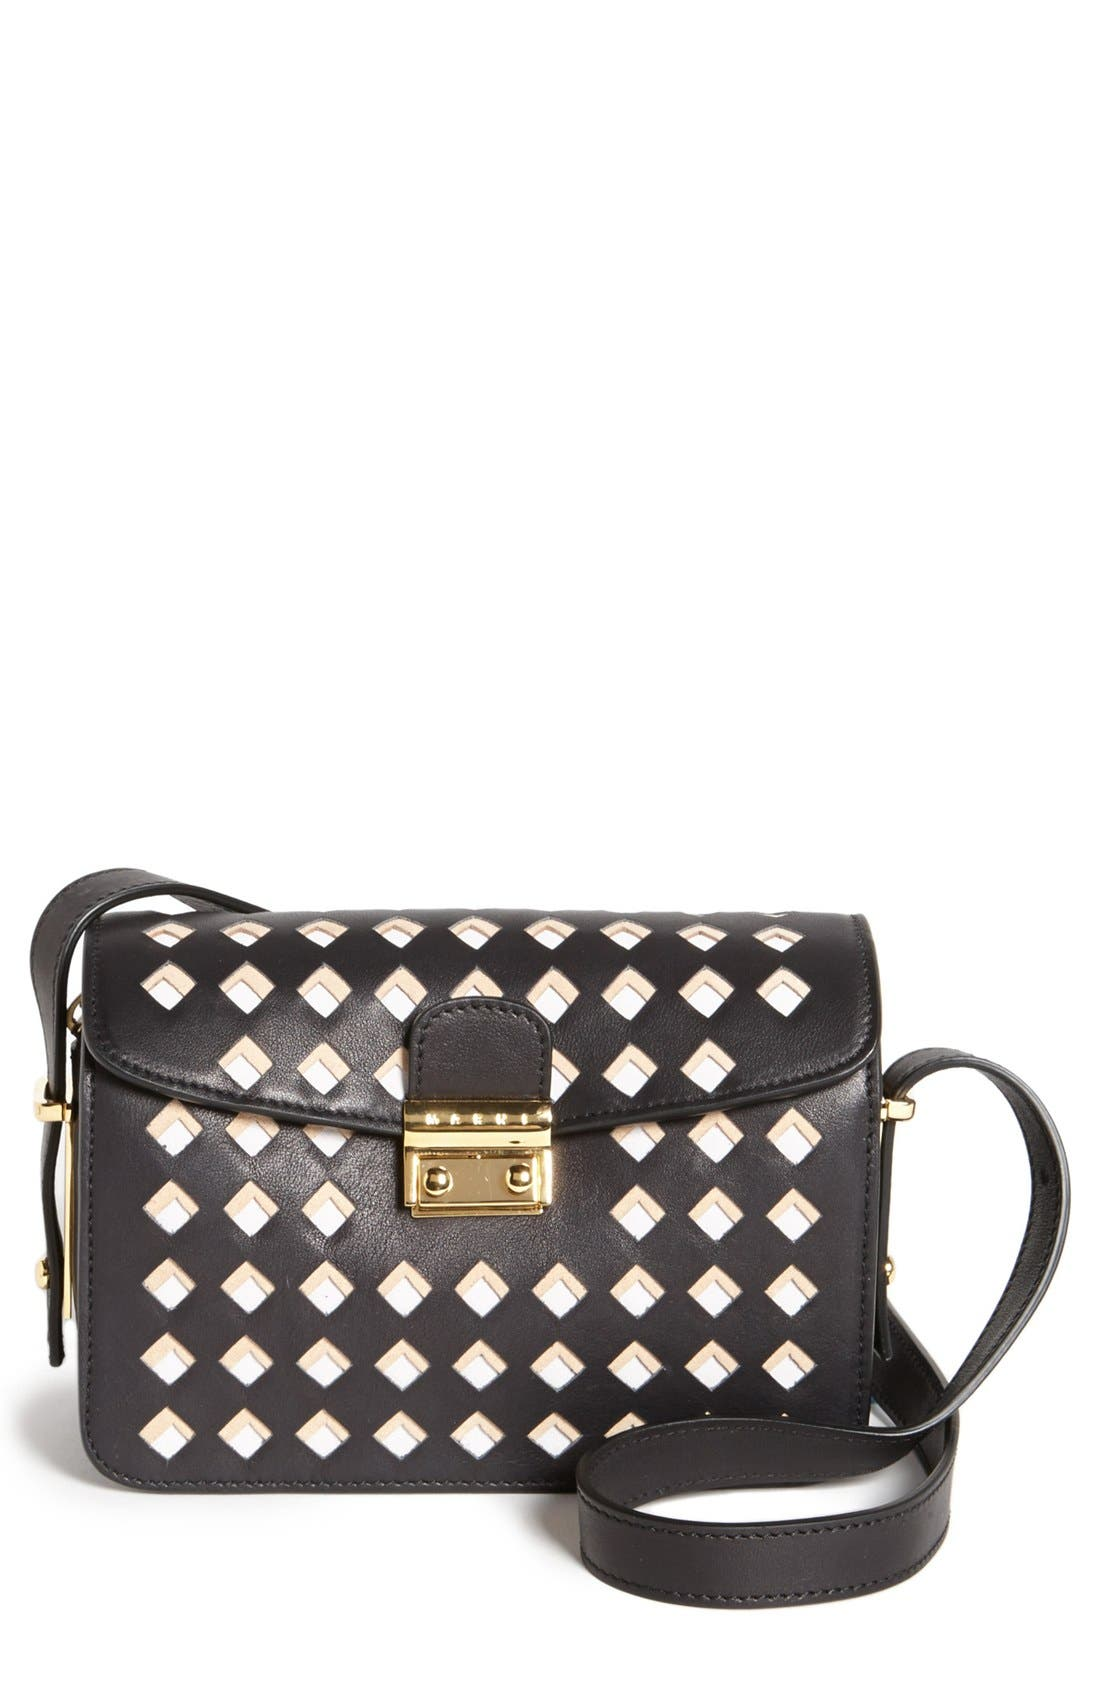 Alternate Image 1 Selected - Marni Cutout Crossbody Bag